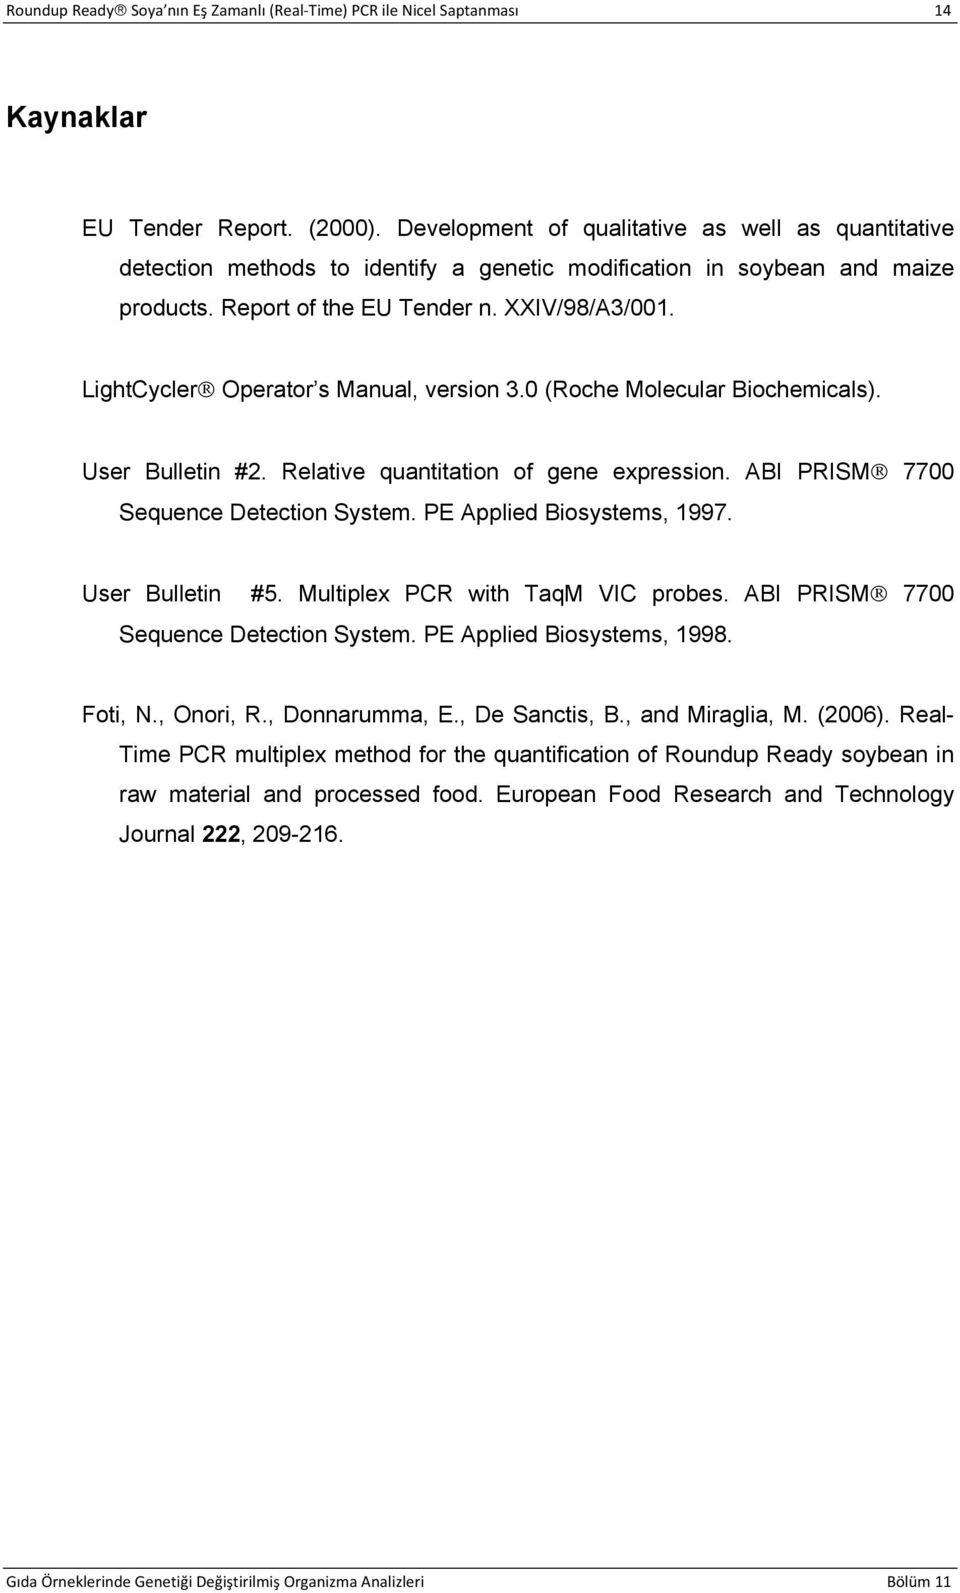 LightCycler Operator s Manual, version 3.0 (Roche Molecular Biochemicals). User Bulletin #2. Relative quantitation of gene expression. ABI PRISM 7700 Sequence Detection System.